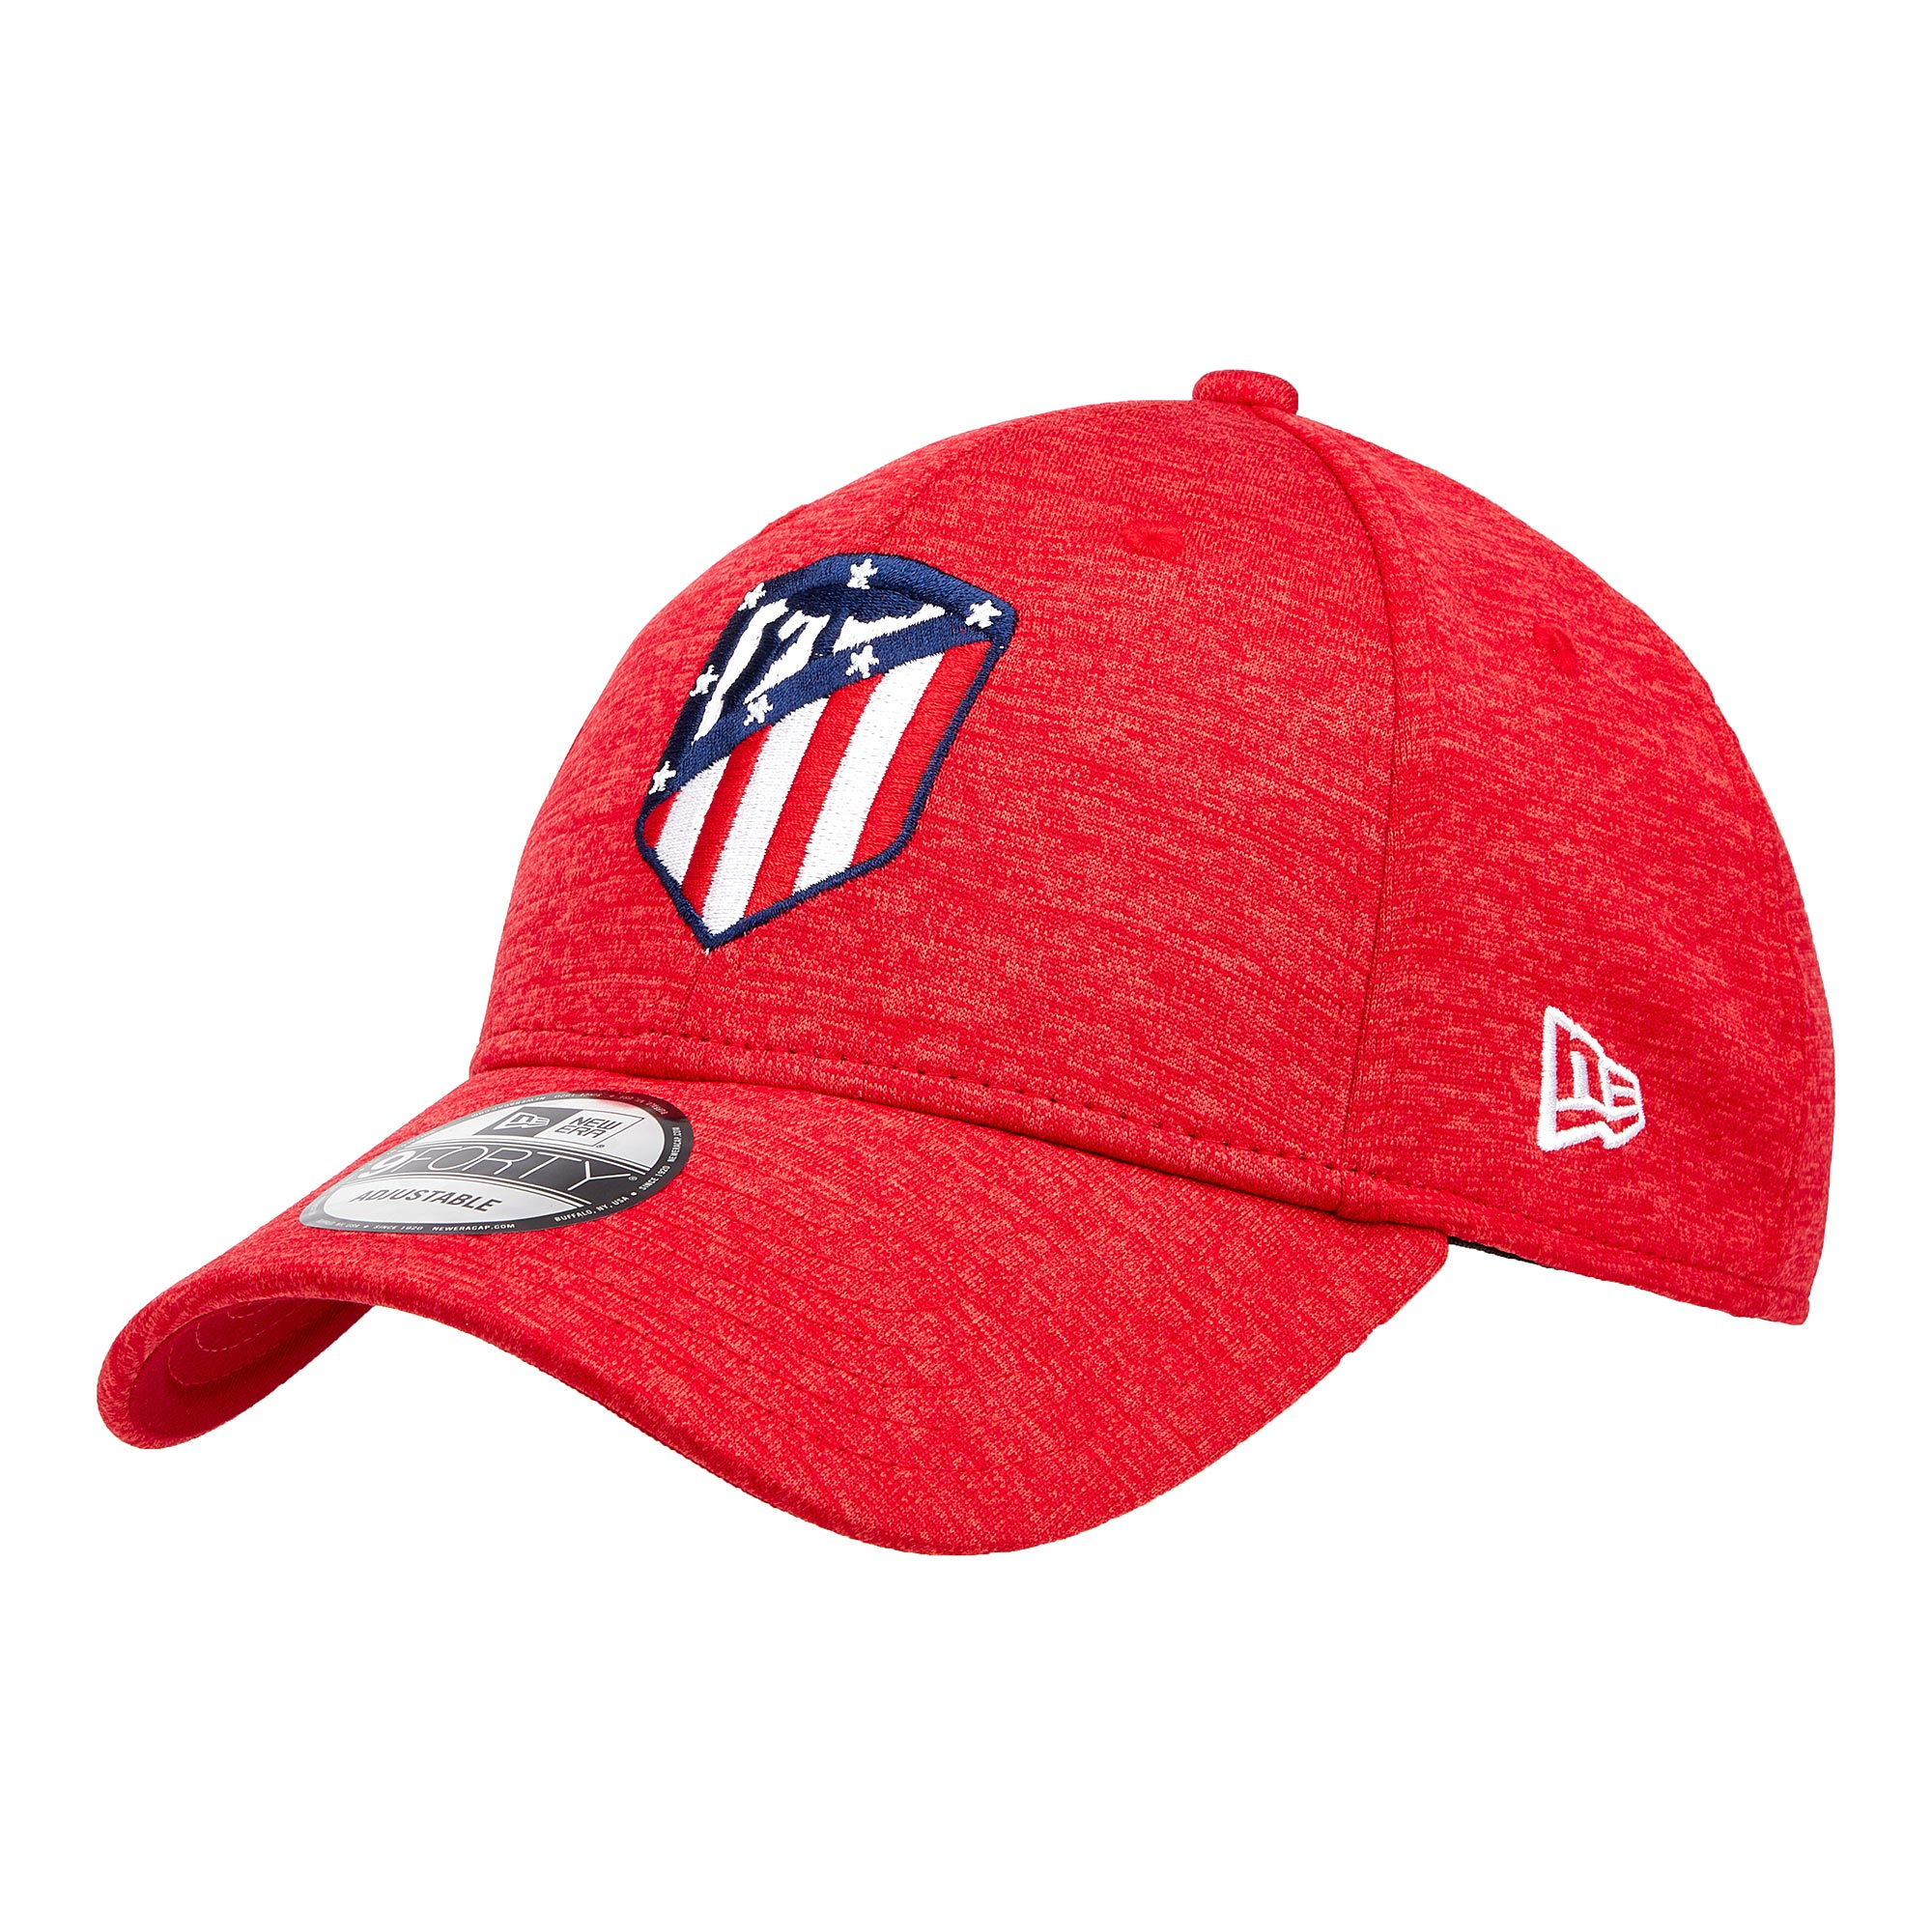 Gorra regulable 9FORTY Shadow Tech del Atlético de Madrid de New Era en rojo